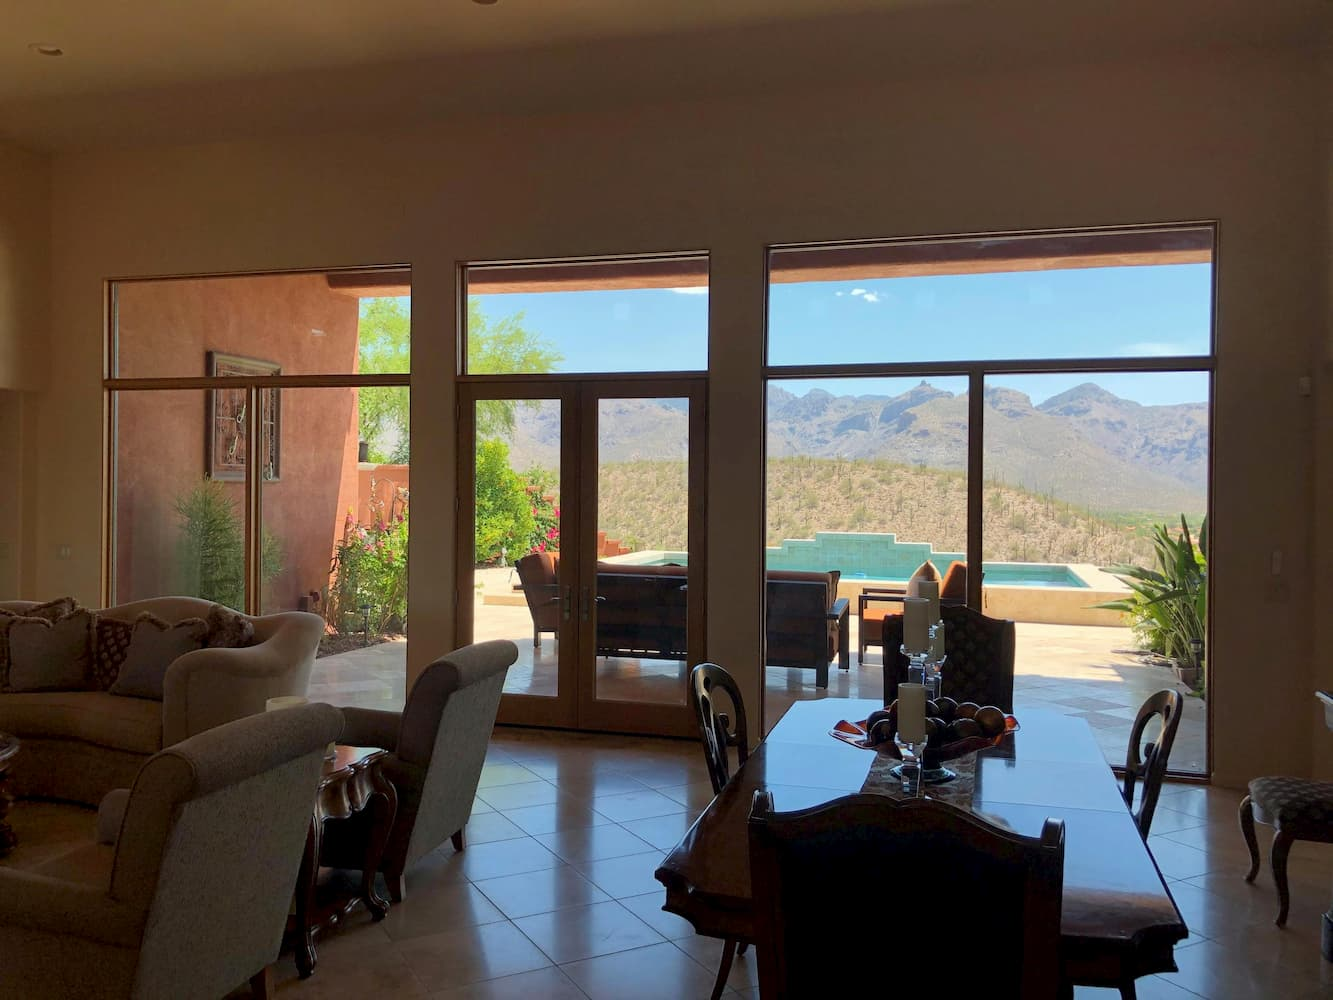 Interior view of French patio doors in Tucson home living room